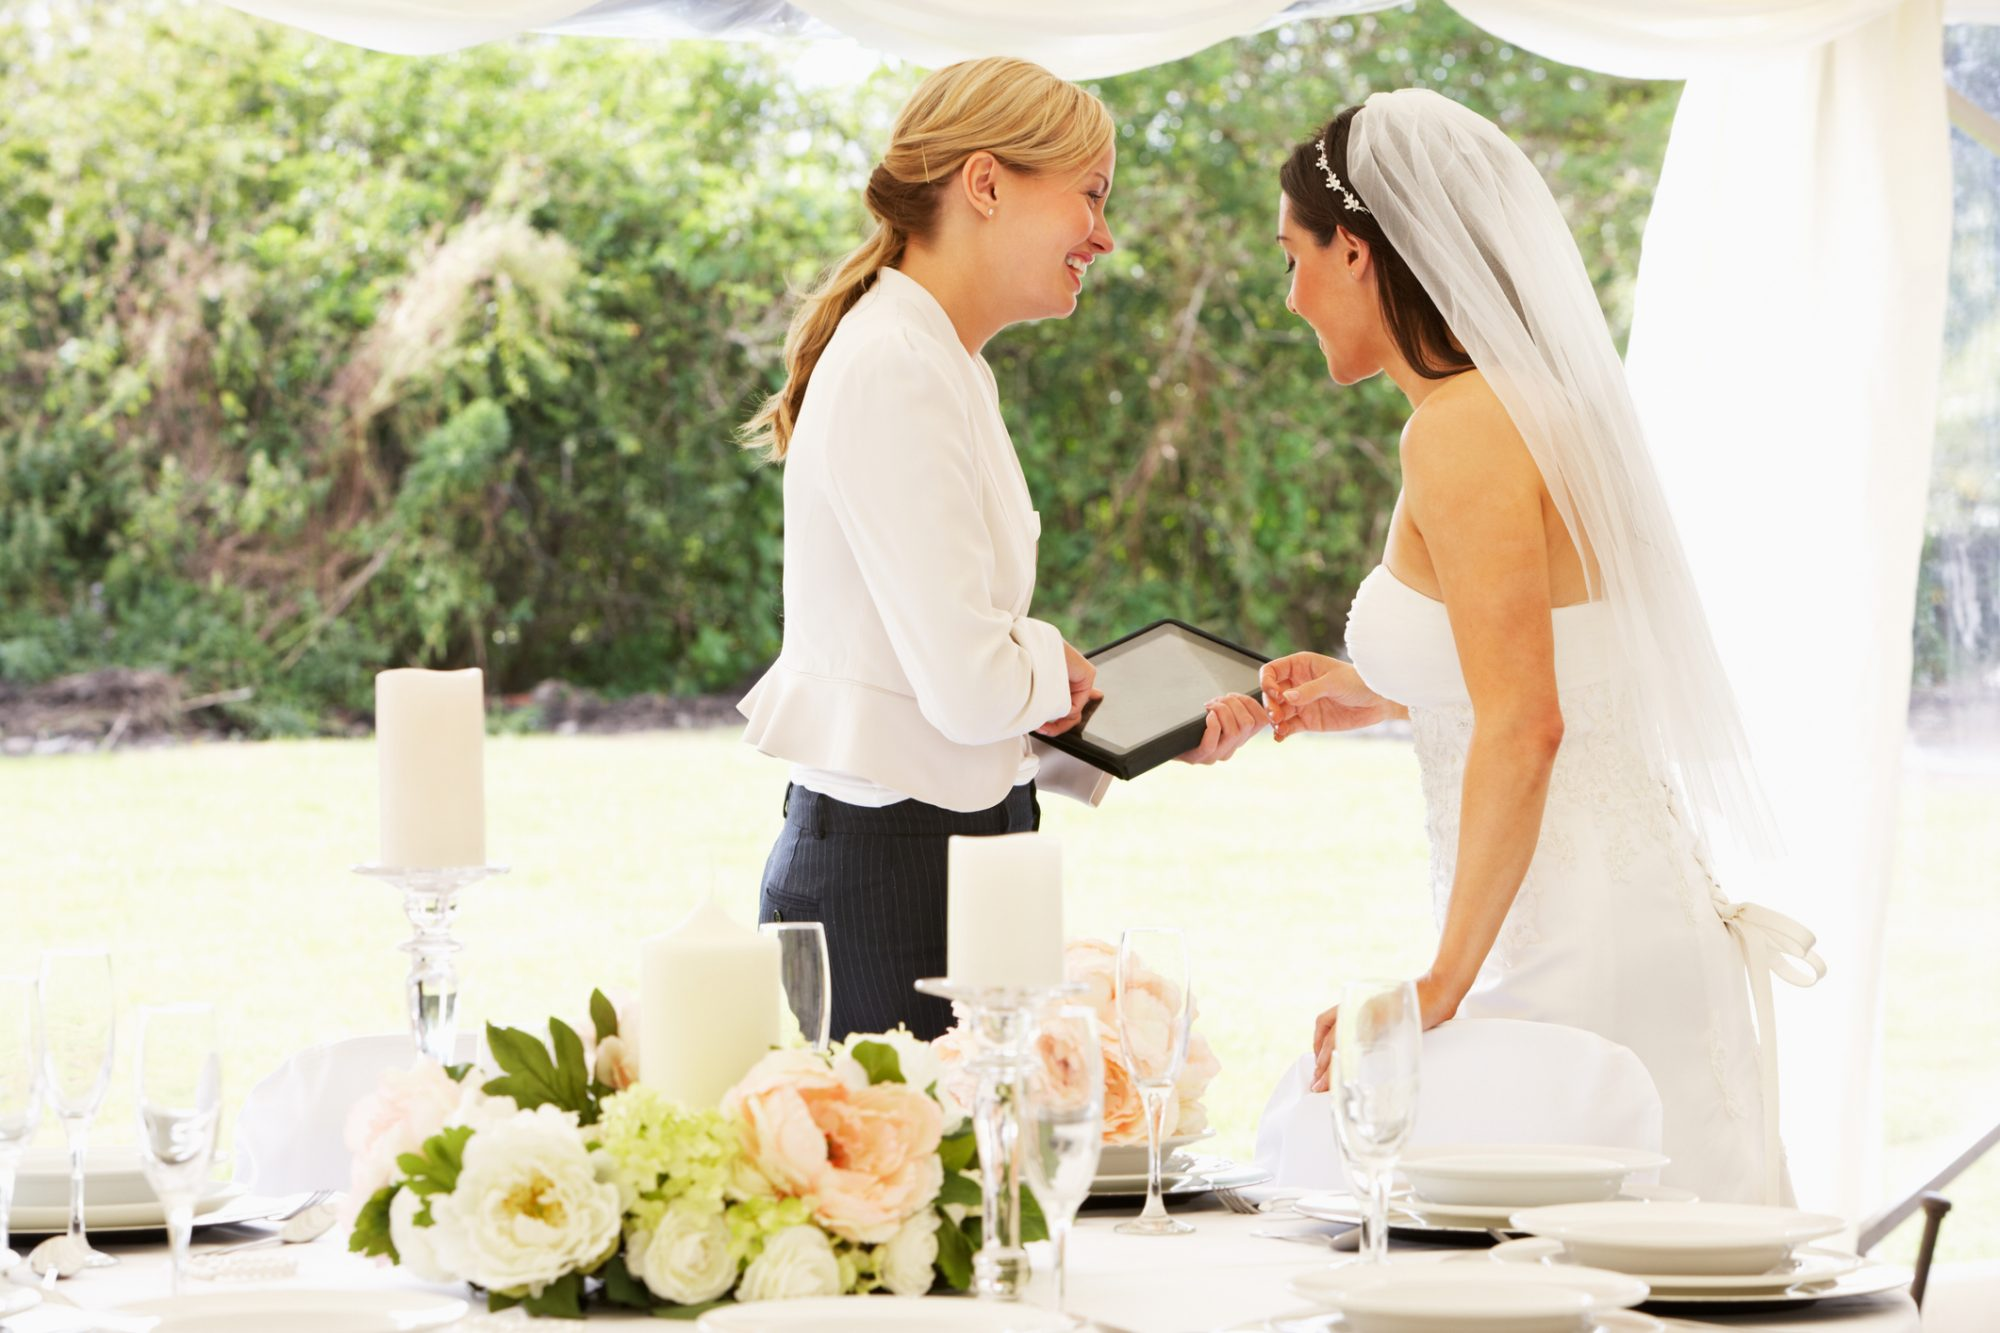 Wedding Planner and Bride at Reception